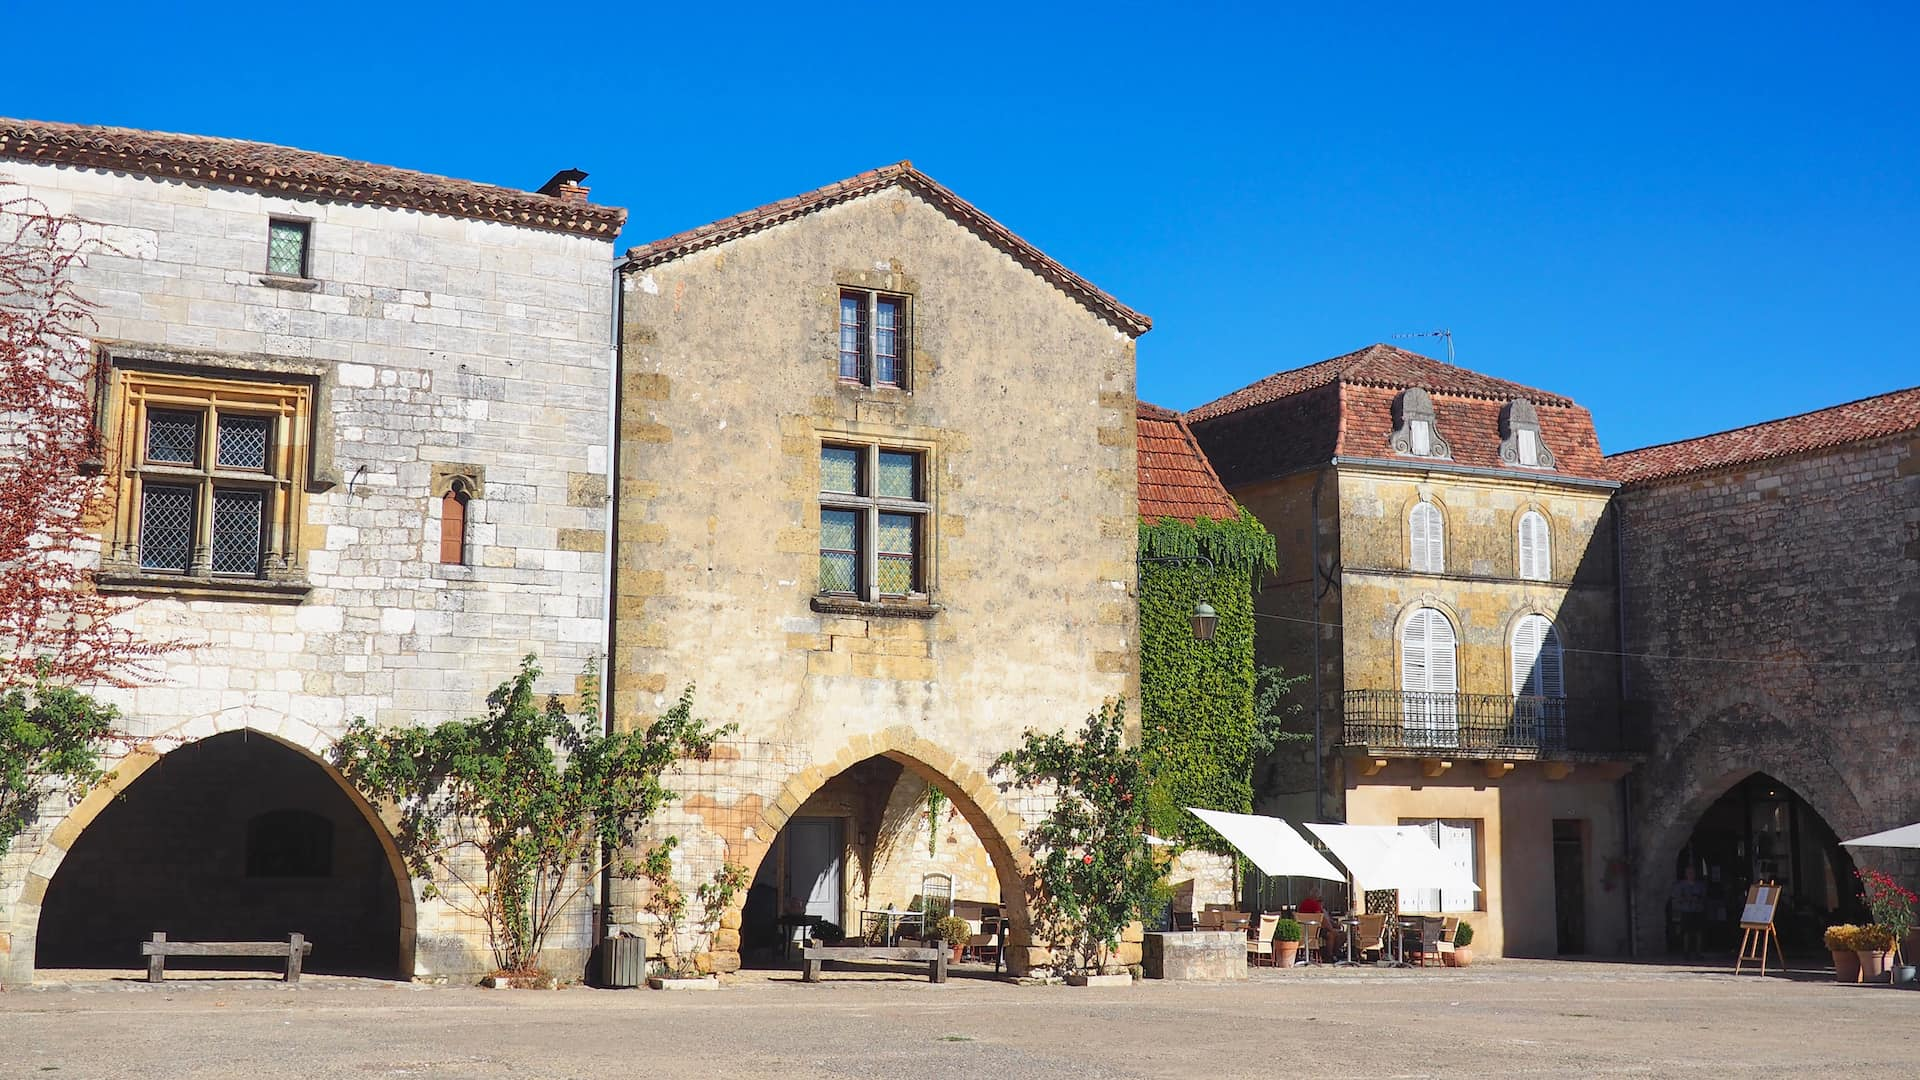 Stone buildings with three archways